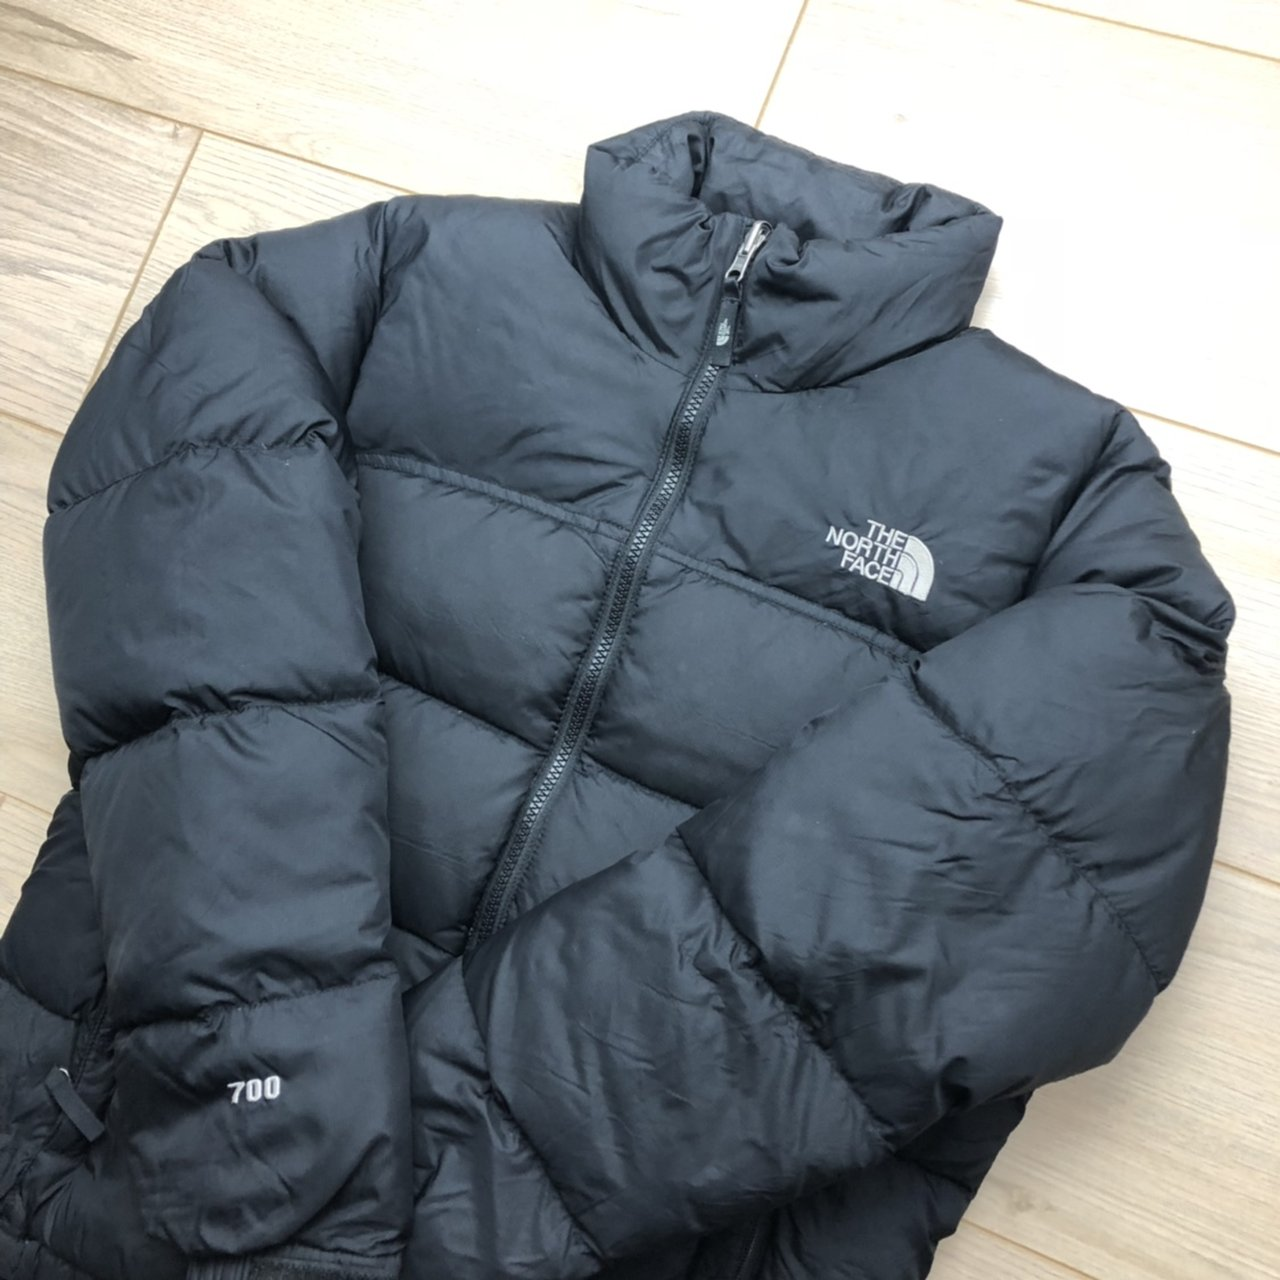 f6d5f0ccc4  pedestrianclothing. 4 months ago. United Kingdom. Vintage North face 700  nuptse puffer jacket ...